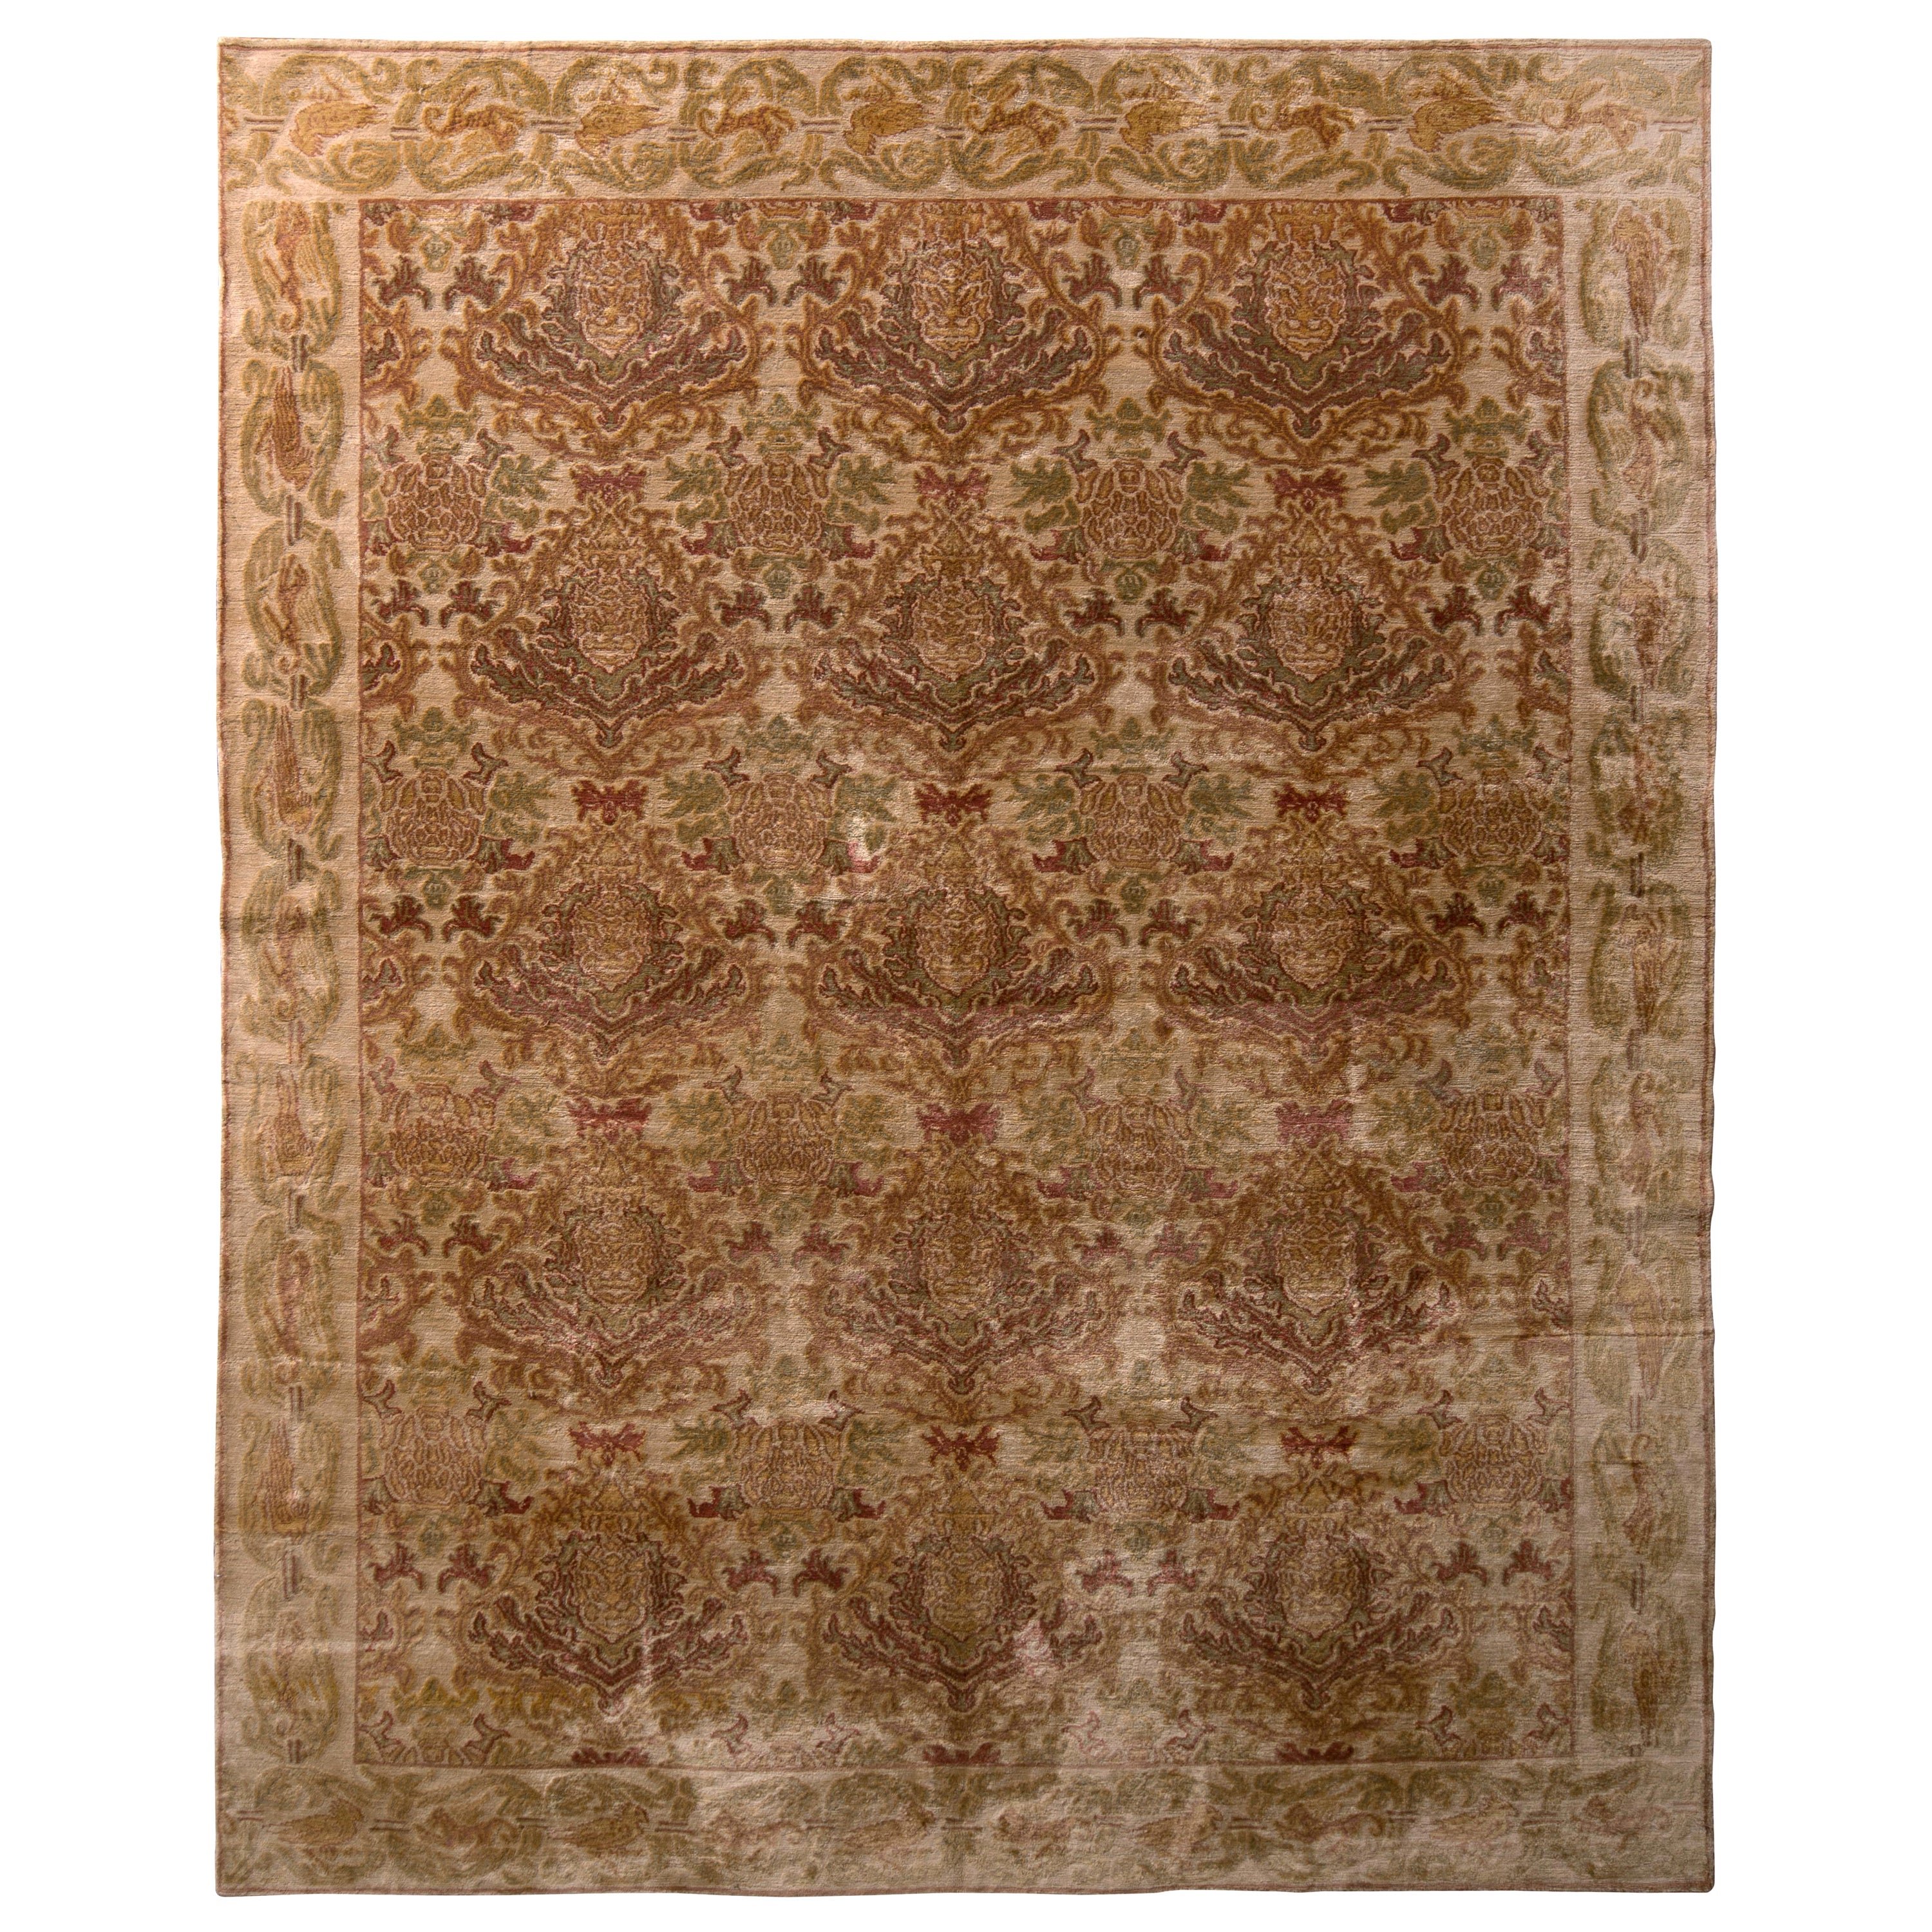 Hand Knotted European Style Rug Beige Brown Pink Floral Pattern by Rug & Kilim